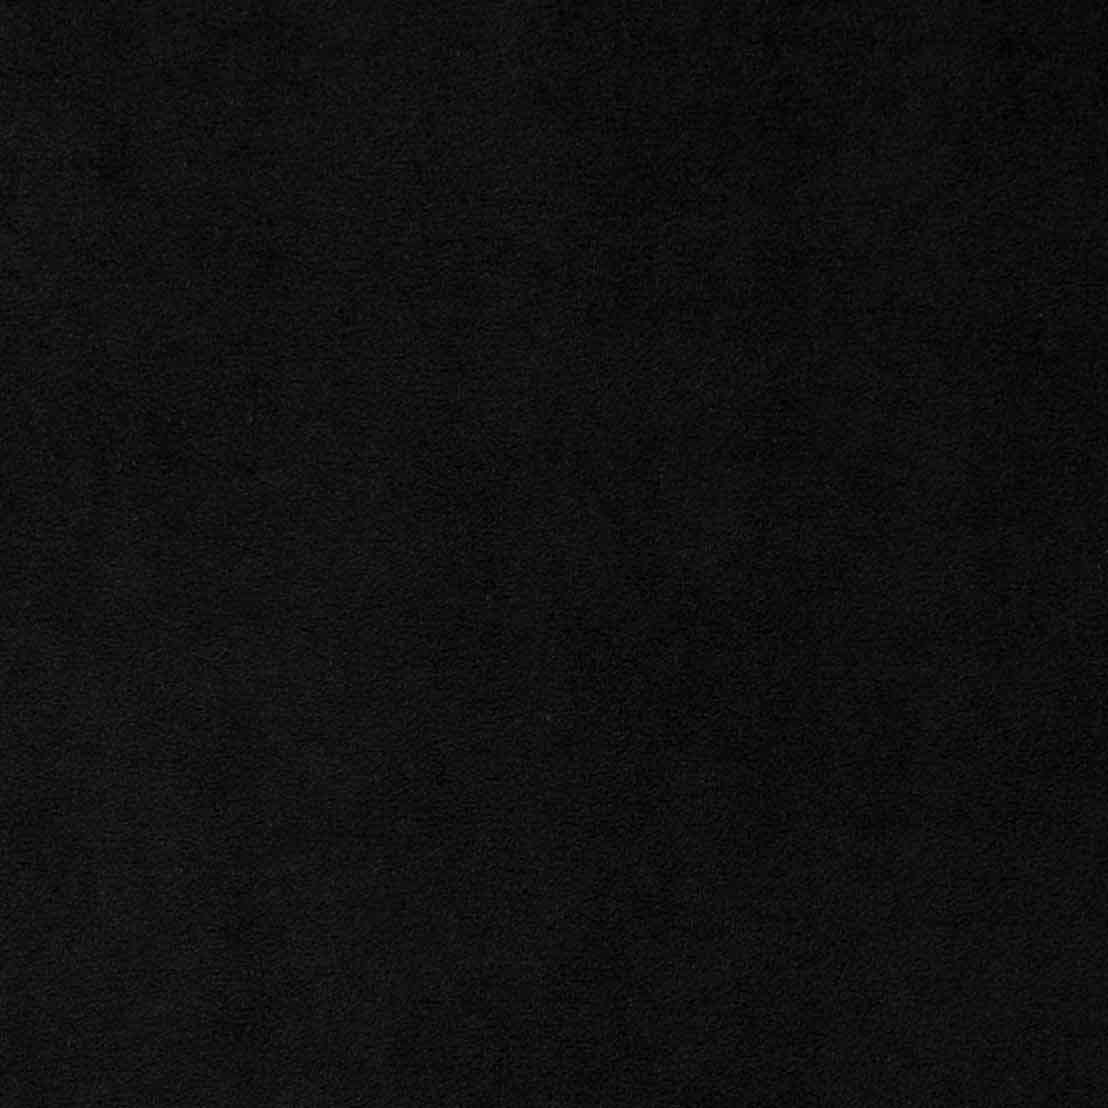 Merveilleux Black Velvet Tablecloth Rentals For Wedding And Party In NJ